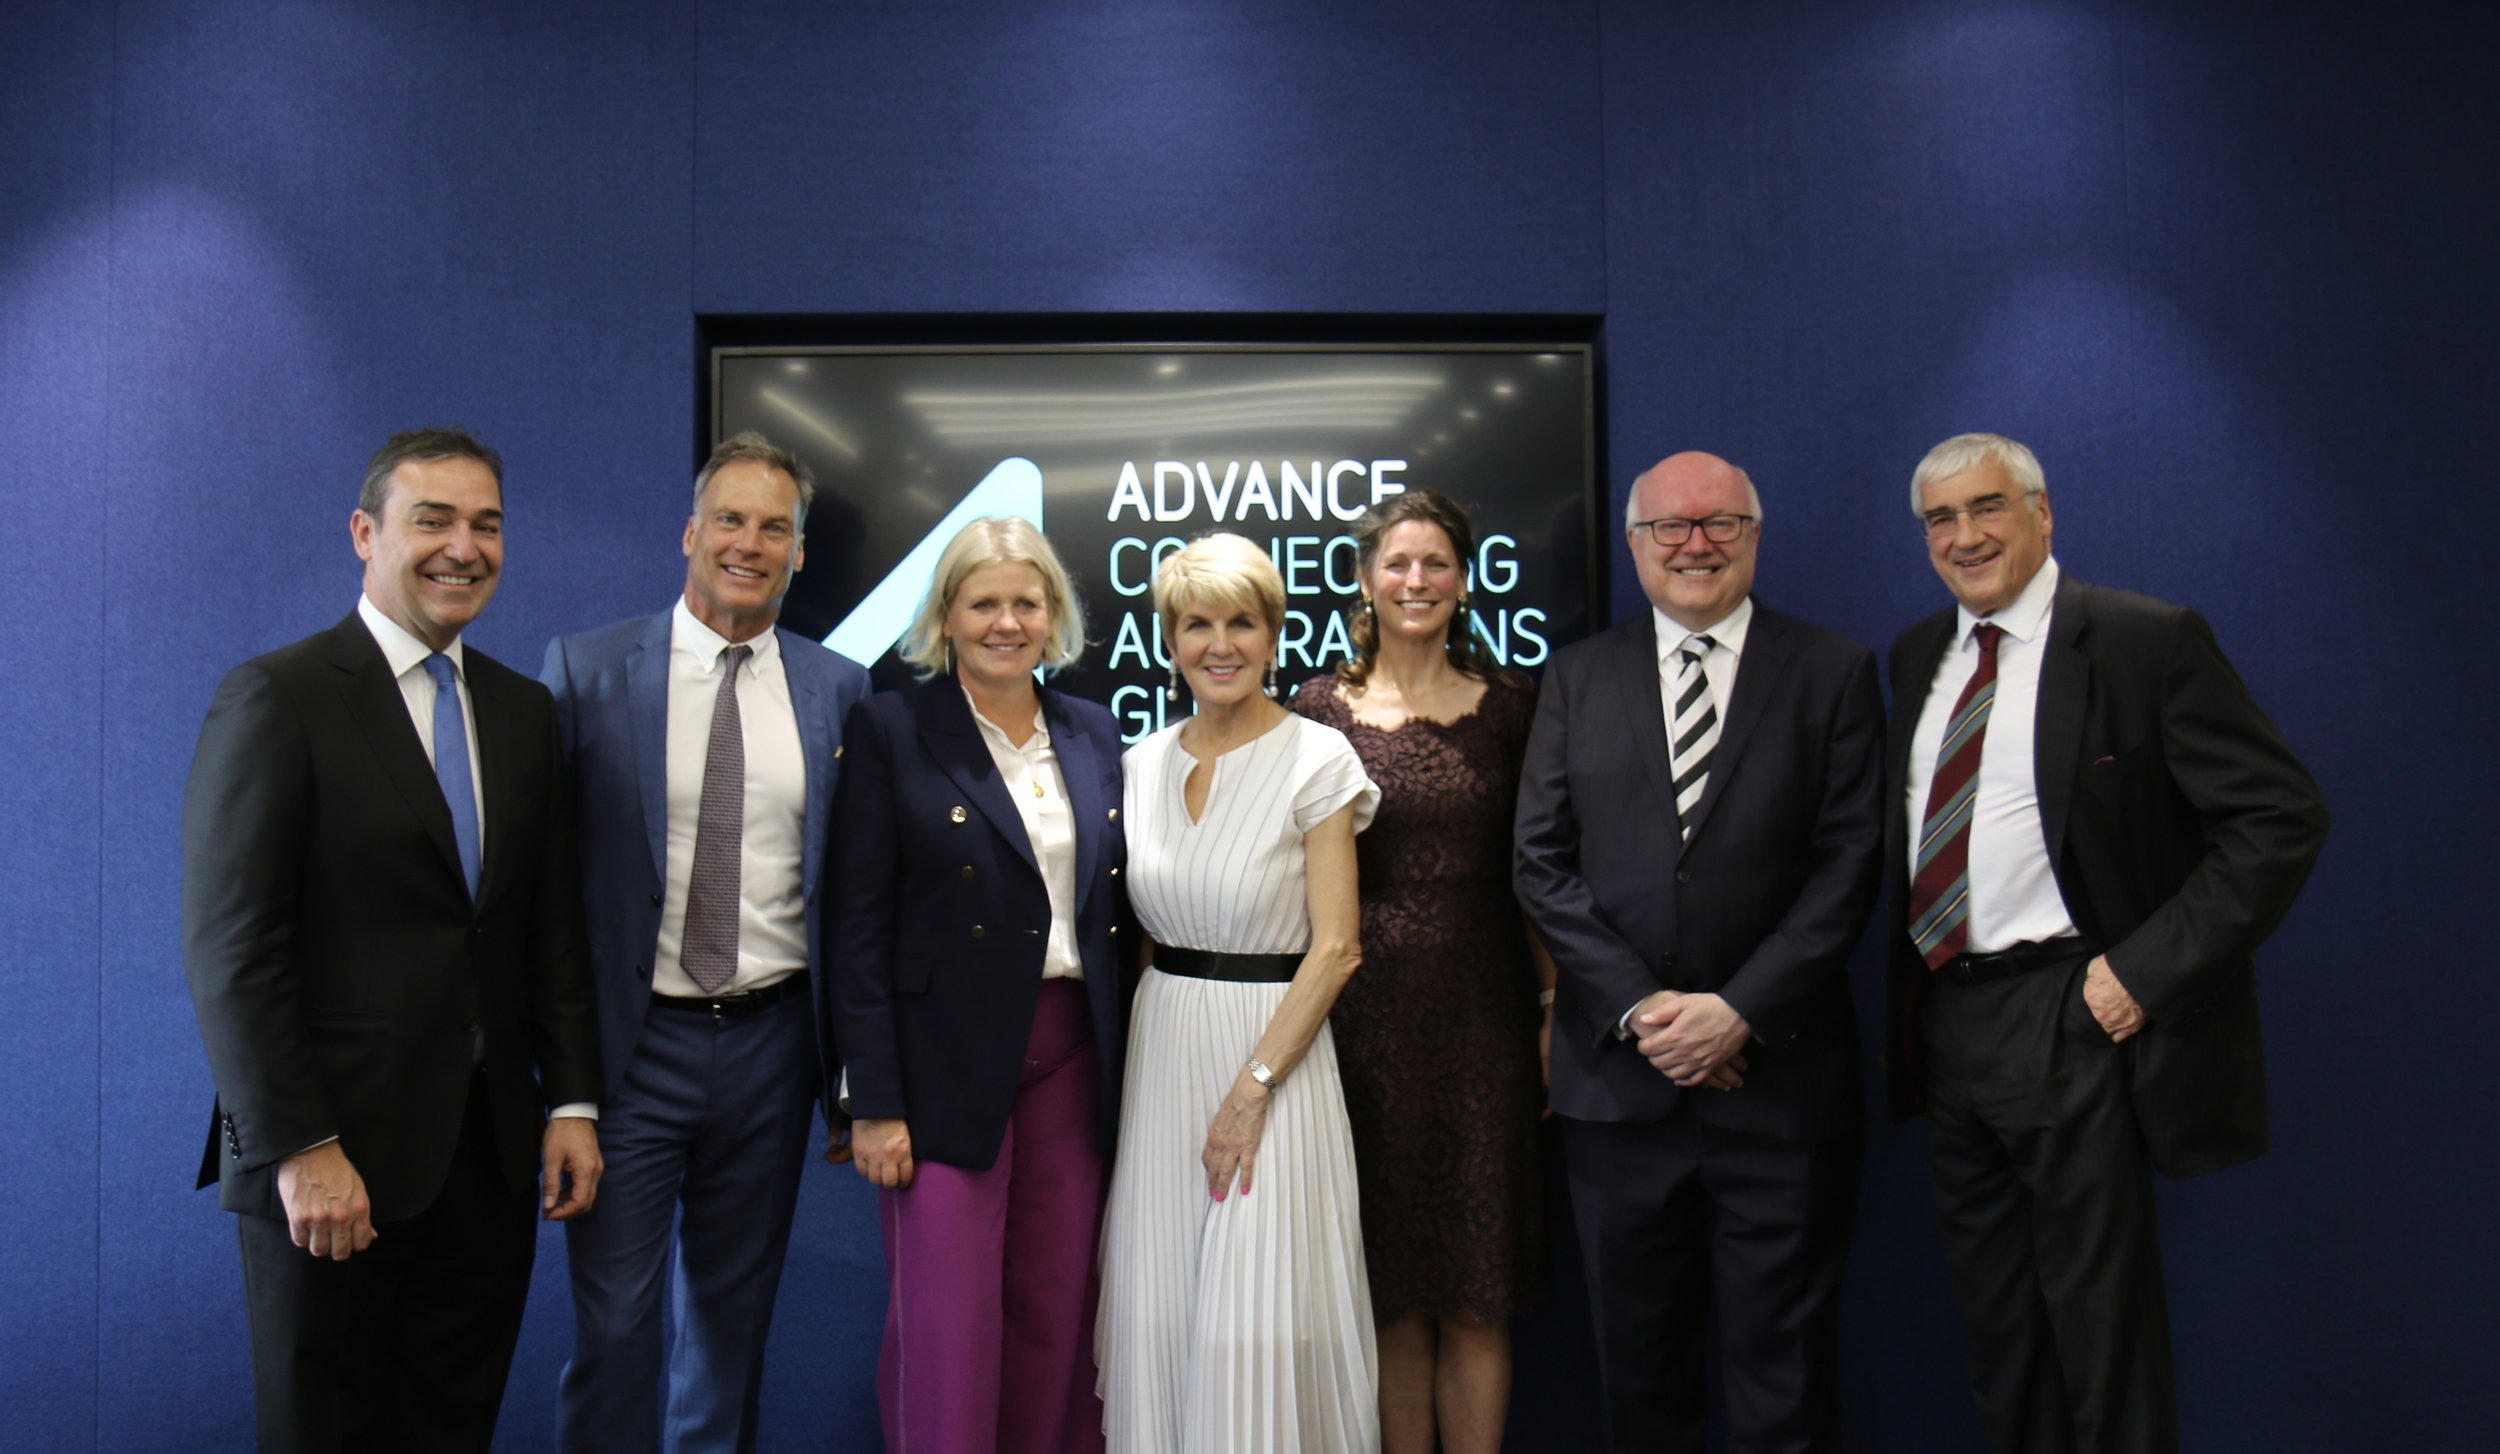 The Hon Steven Marshall MP, Premier of South Australia, David Panton, Yasmin Allen, Chairman of Advance, Julie Bishop, The Hon Jeannie Lopes, UK Ambassador for Advance, His Excellency, The Hon George Brandis QC, High Commissioner to Australia, Sir Michael Hintze GCSG AM